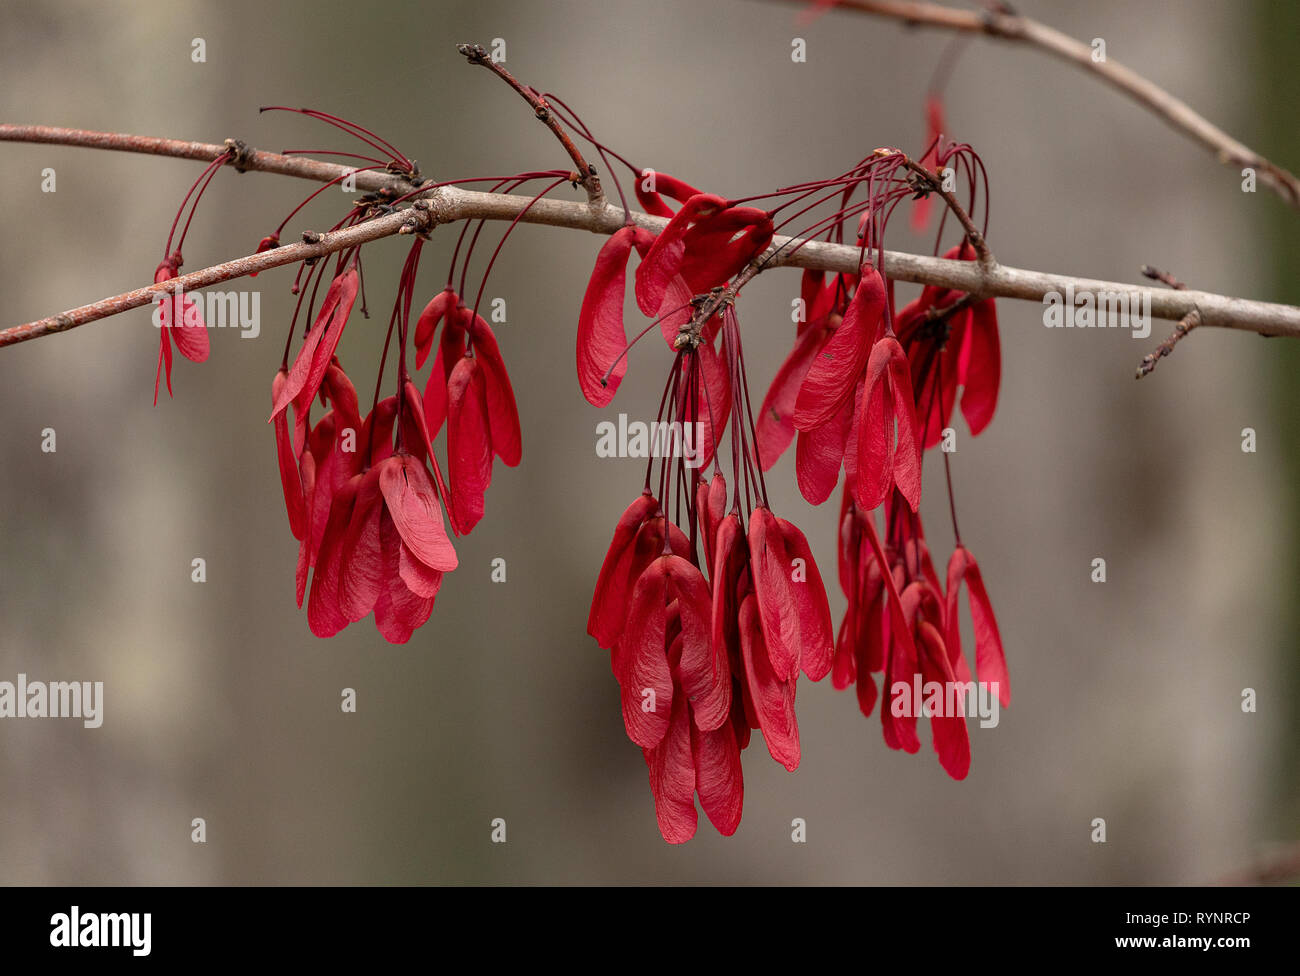 Red maple, Acer rubrum in fruit in winter, with beautiful red samaras. Florida. Stock Photo